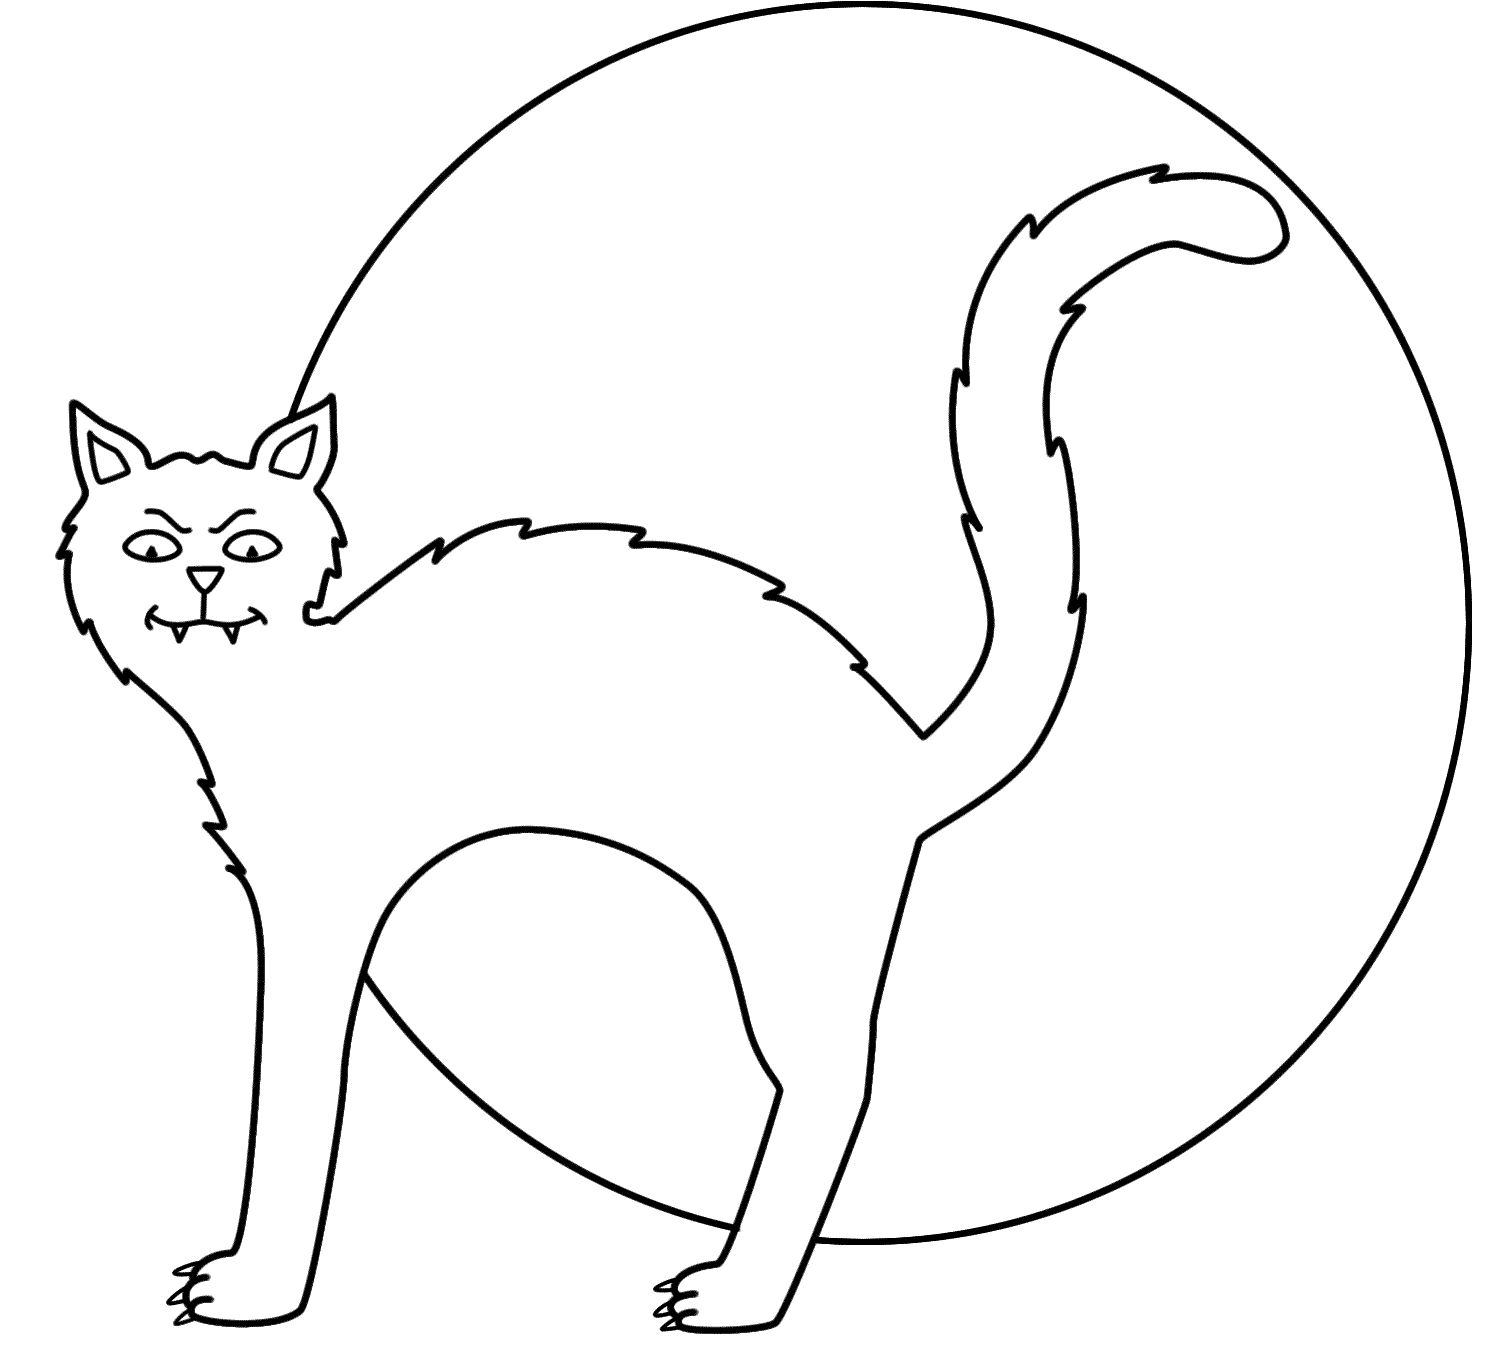 Fortune Scary Black Cat Coloring Pages Drawing And White At